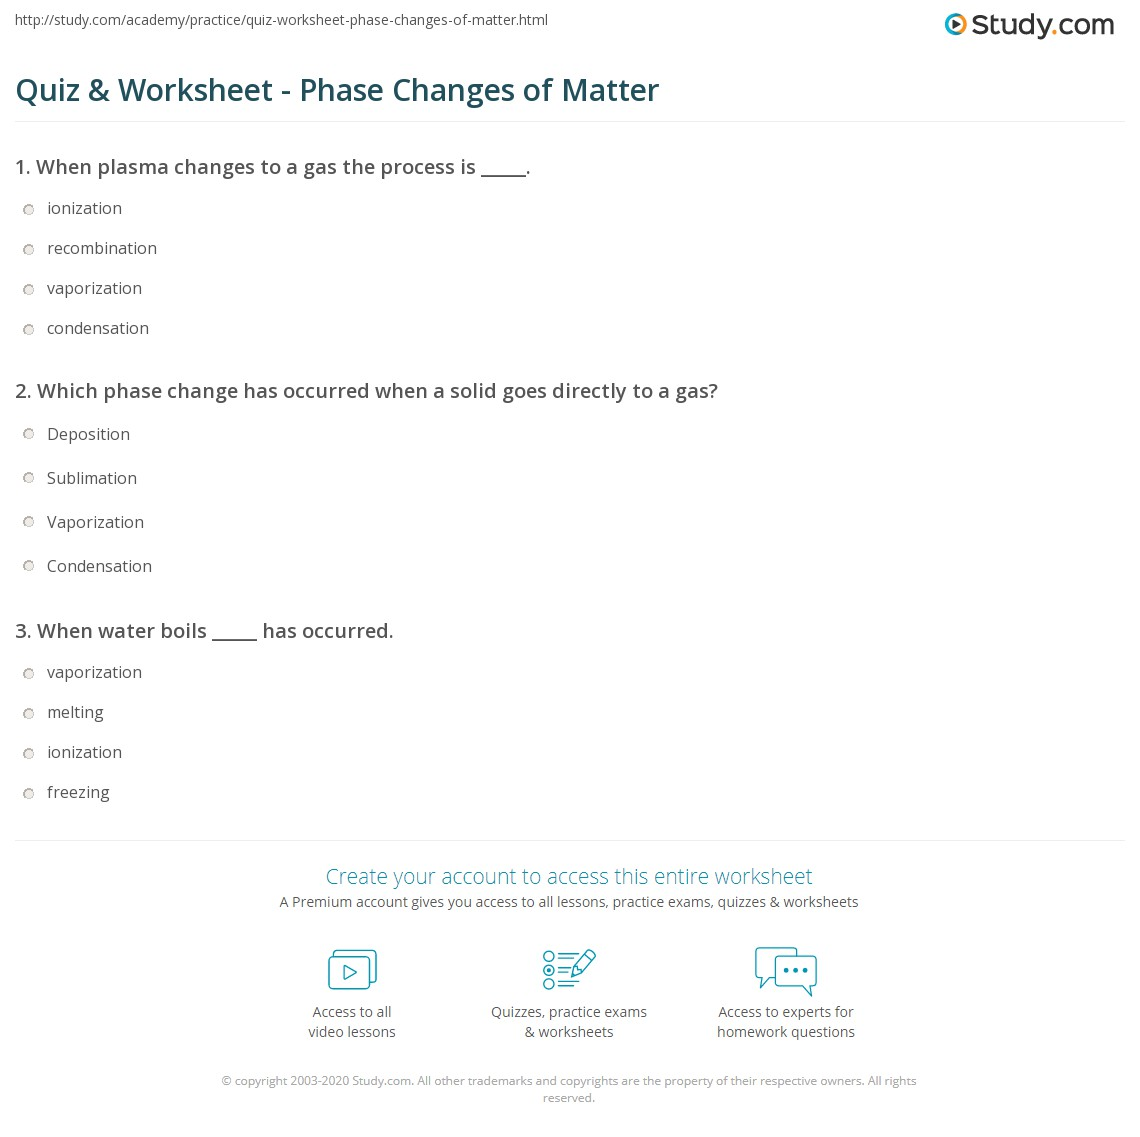 Quiz Worksheet Phase Changes of Matter – Phase Change Worksheet Answers